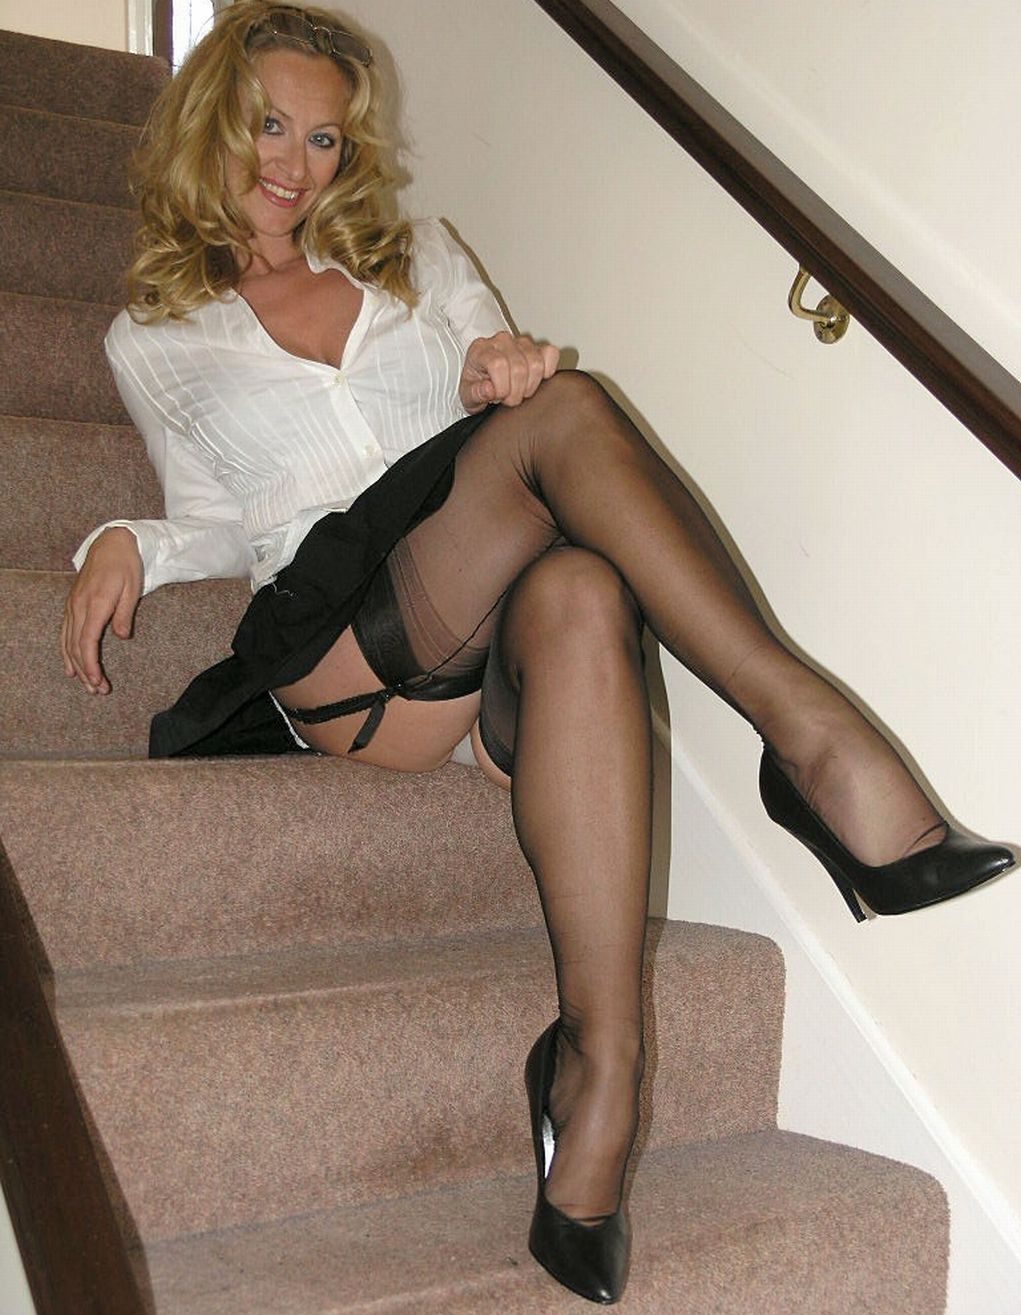 this is very english looking, with nylons, garter belt and white